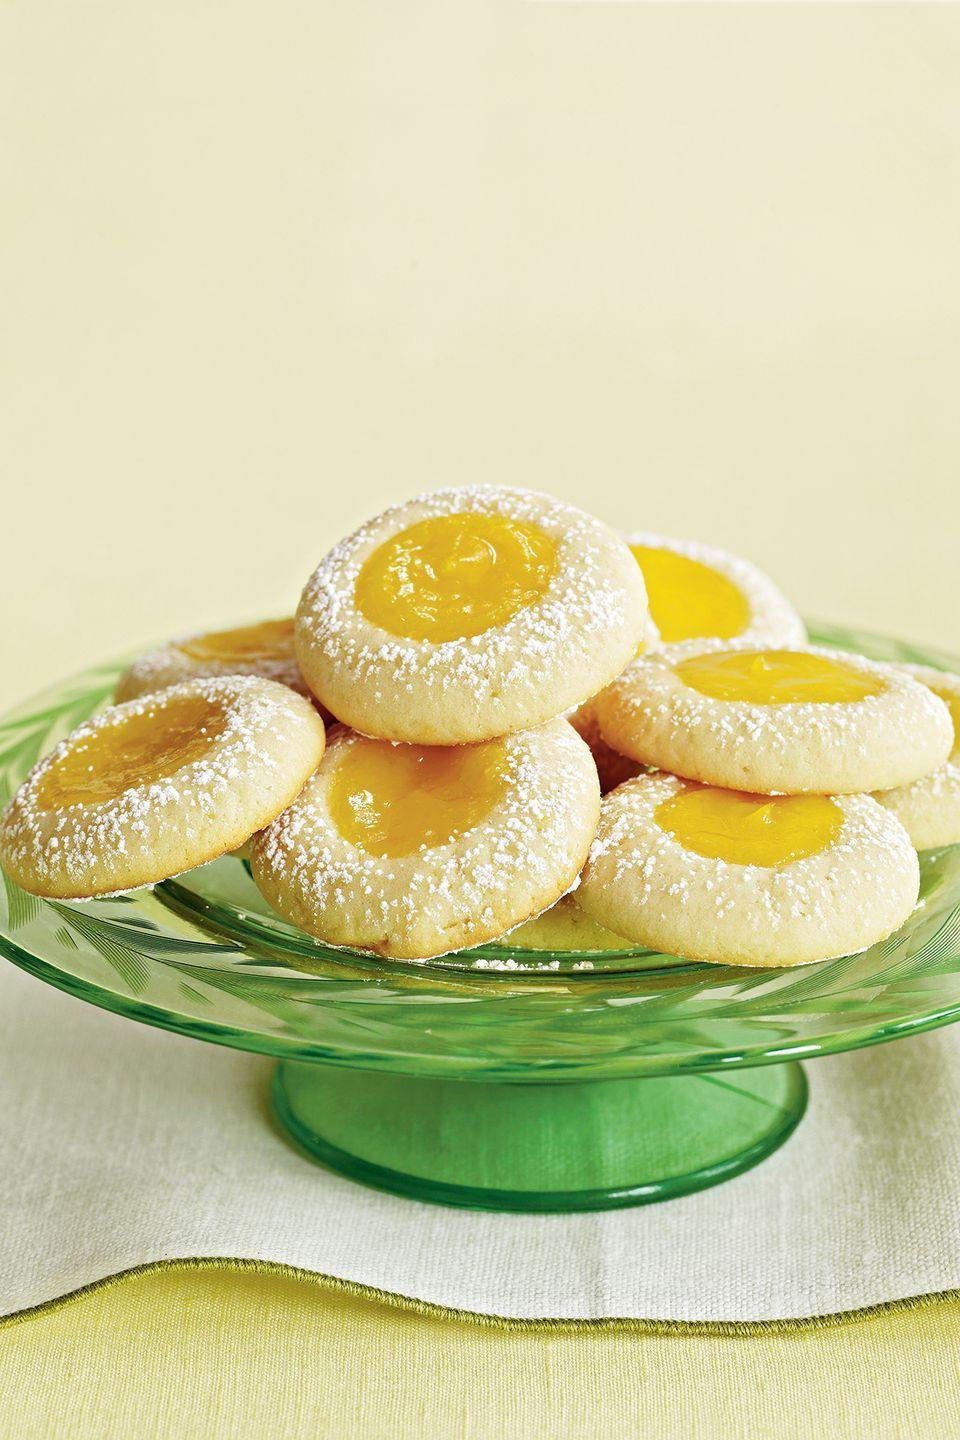 "<p>If mom loves all things lemon, she won't be able to keep her hands off these bite-sized treats, which are filled with lemon curd and lightly dusted with sugar.</p><p><strong><a href=""https://www.countryliving.com/food-drinks/recipes/a31919/lemon-dimples-recipe-122290/"" rel=""nofollow noopener"" target=""_blank"" data-ylk=""slk:Get the recipe"" class=""link rapid-noclick-resp"">Get the recipe</a>.</strong></p>"